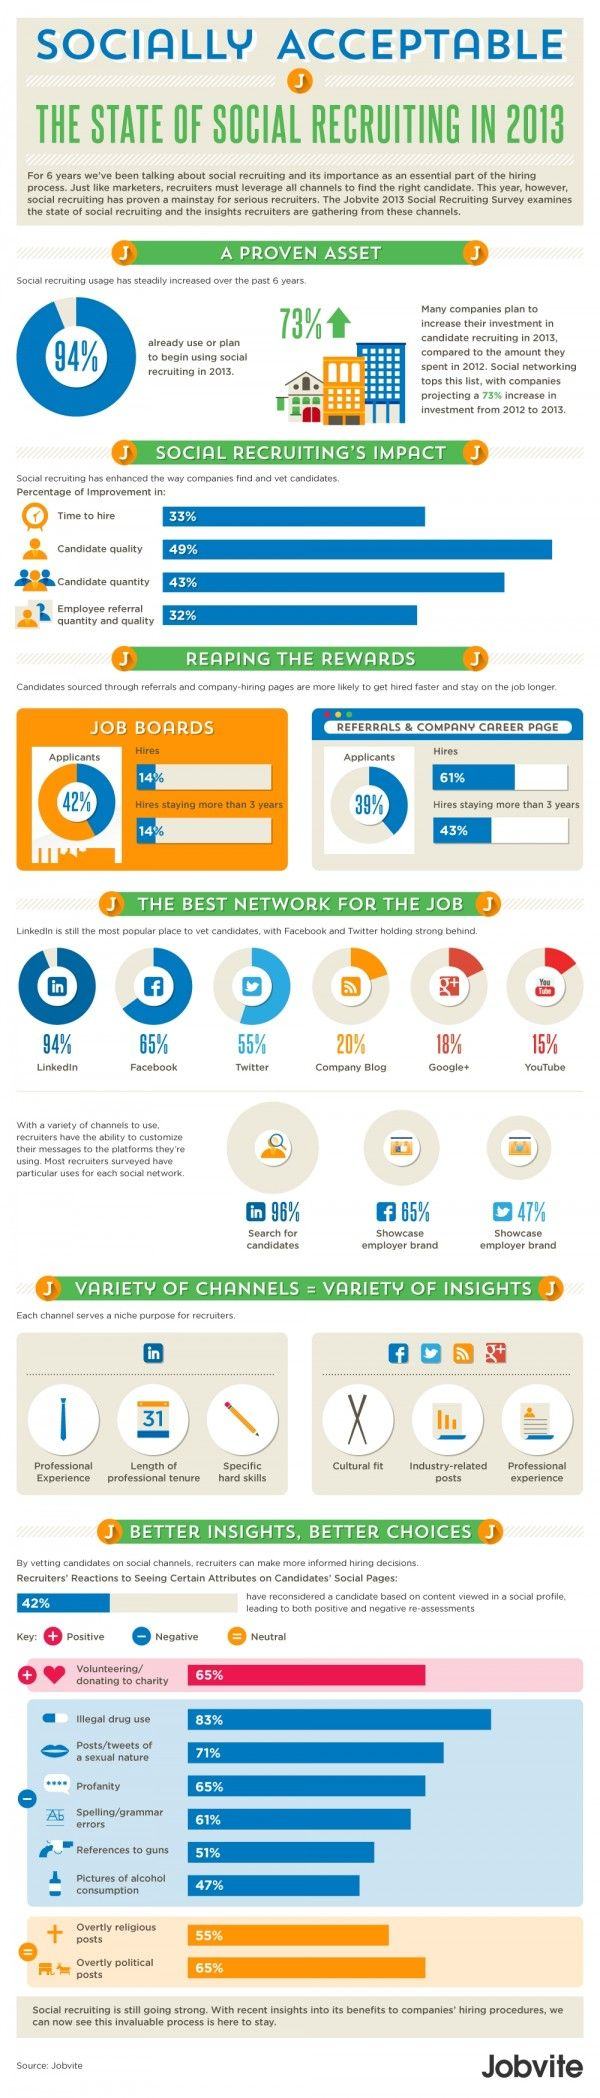 Social Hiring Still The Preferred Tool Of Recruiters Image 2013 Jobvite  Social Recruiting Survey Results